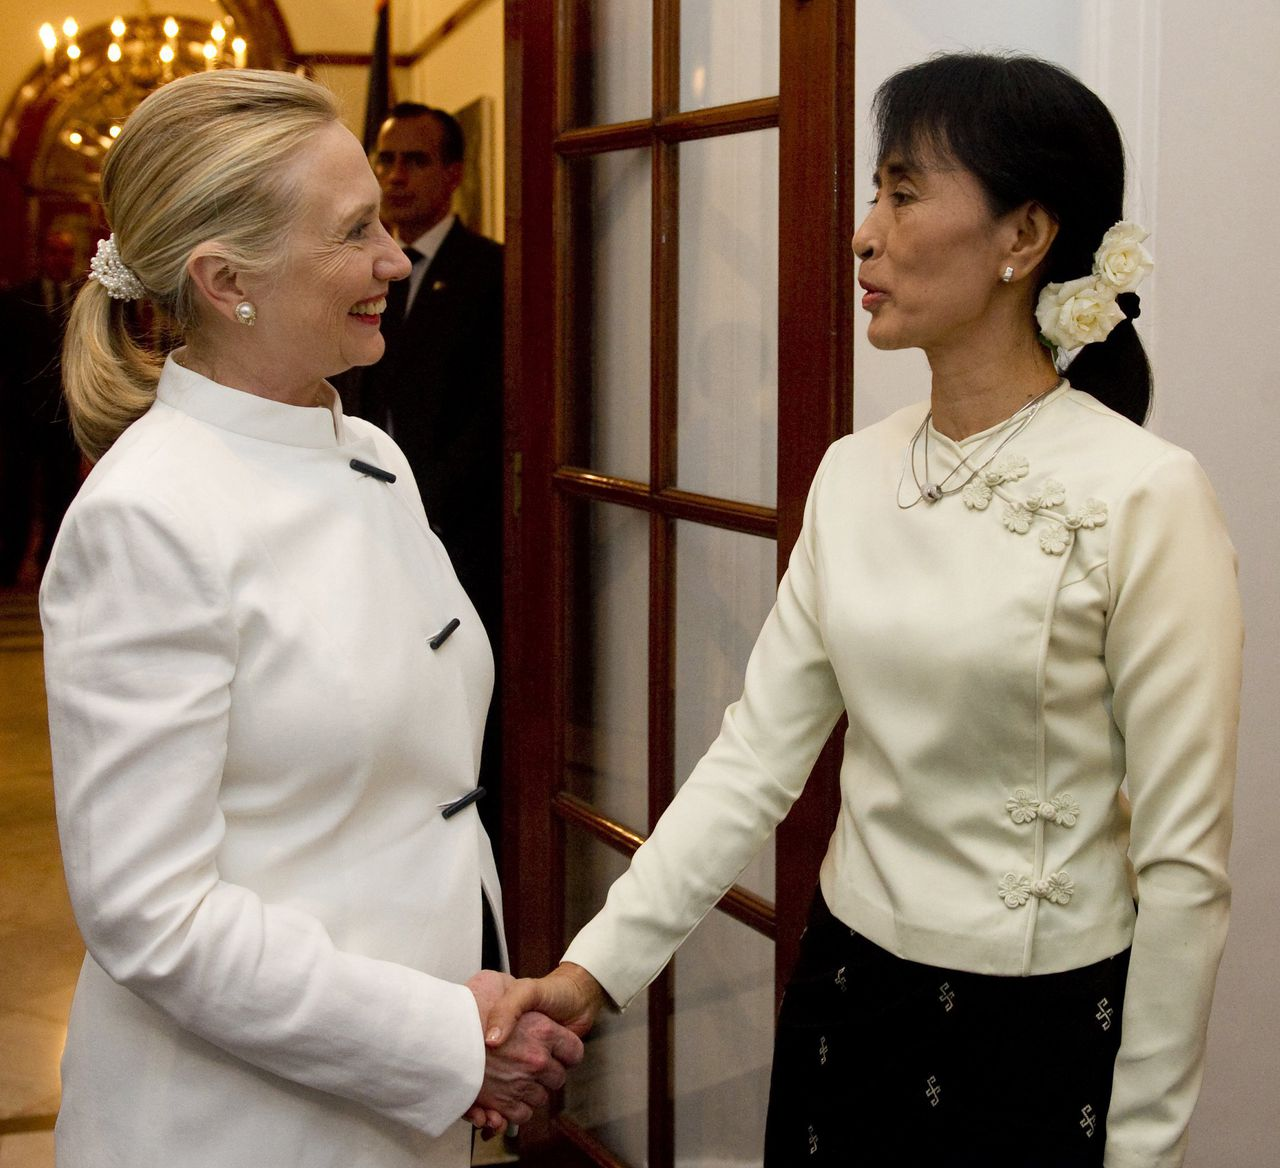 U.S. Secretary of State Hillary Clinton and pro-democracy leader Aung San Suu Kyi shake hands before dinner at the U.S. Chief of Mission Residence in Yangon, December 1, 2011. Clinton and Suu Kyi, a Nobel peace laureate, met at a U.S. diplomatic residence and posed for pictures before retiring to have a private dinner on a veranda overlooking a lake, dining on curry and Burmese delicacies. REUTERS/Saul Loeb/Pool (MYANMAR - Tags: POLITICS TPX IMAGES OF THE DAY)